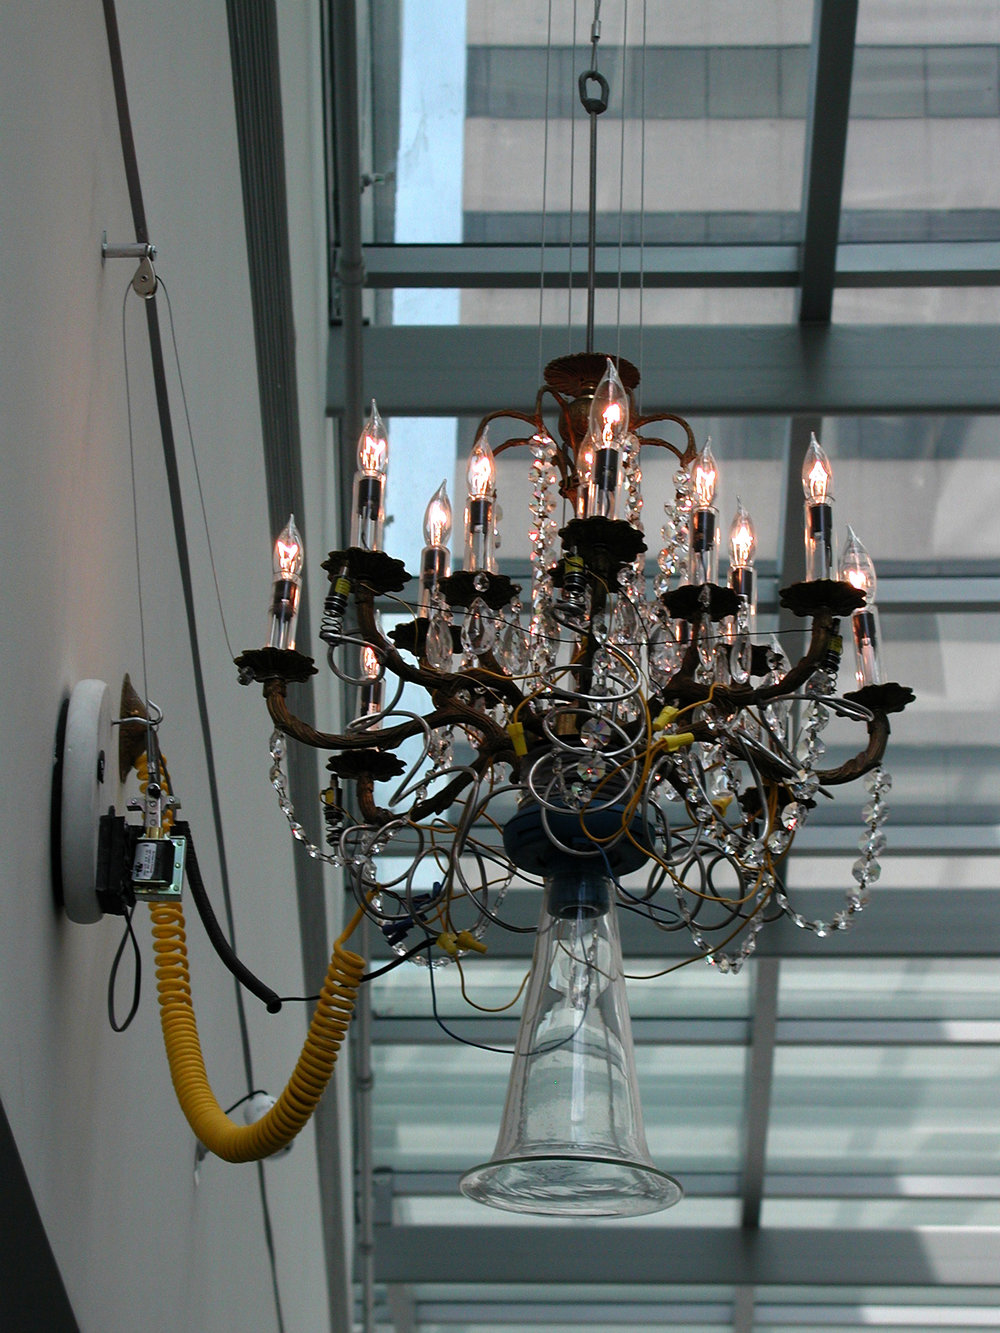 Singin' & Ringin' Chandelier   modified antique chandelier, hand-blown glass speaker bell, digital soundboard, electronics, solenoids, cable,  pushbutton, original recordings by soprano Blythe Walker  approximately 3' diameter x 3.5' high / 2002-3